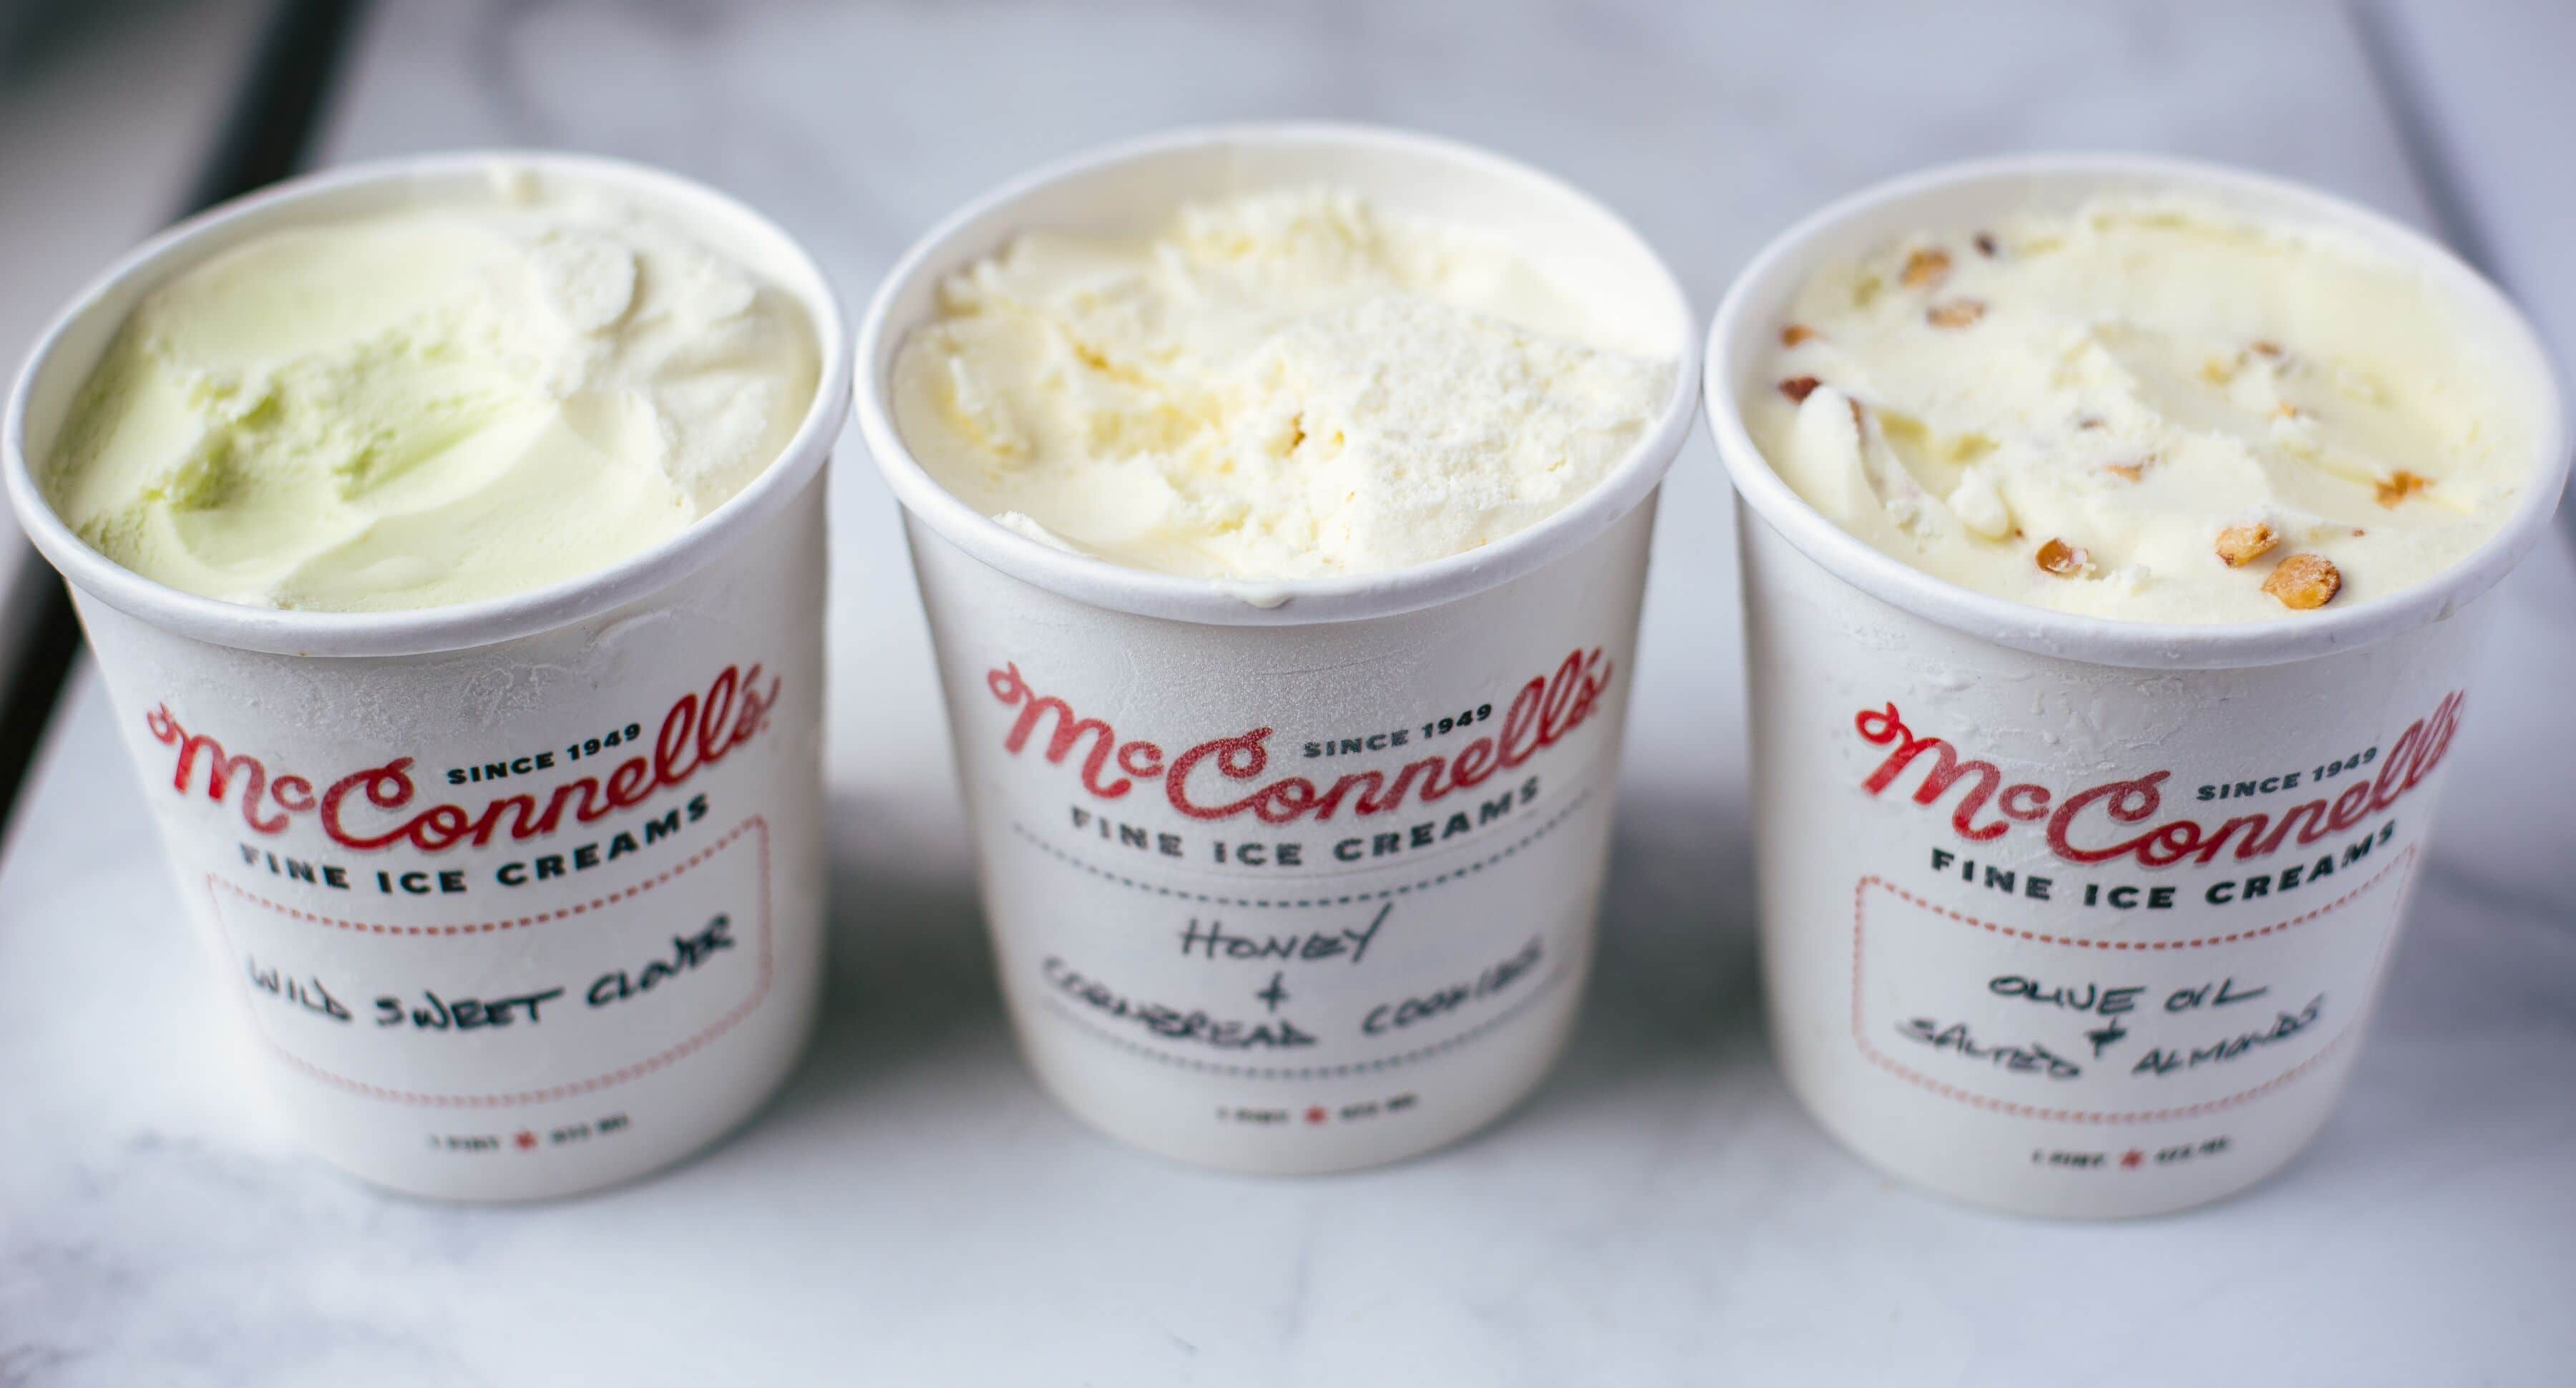 McConnell's Fine Ice Creams Launches Three New Flavors